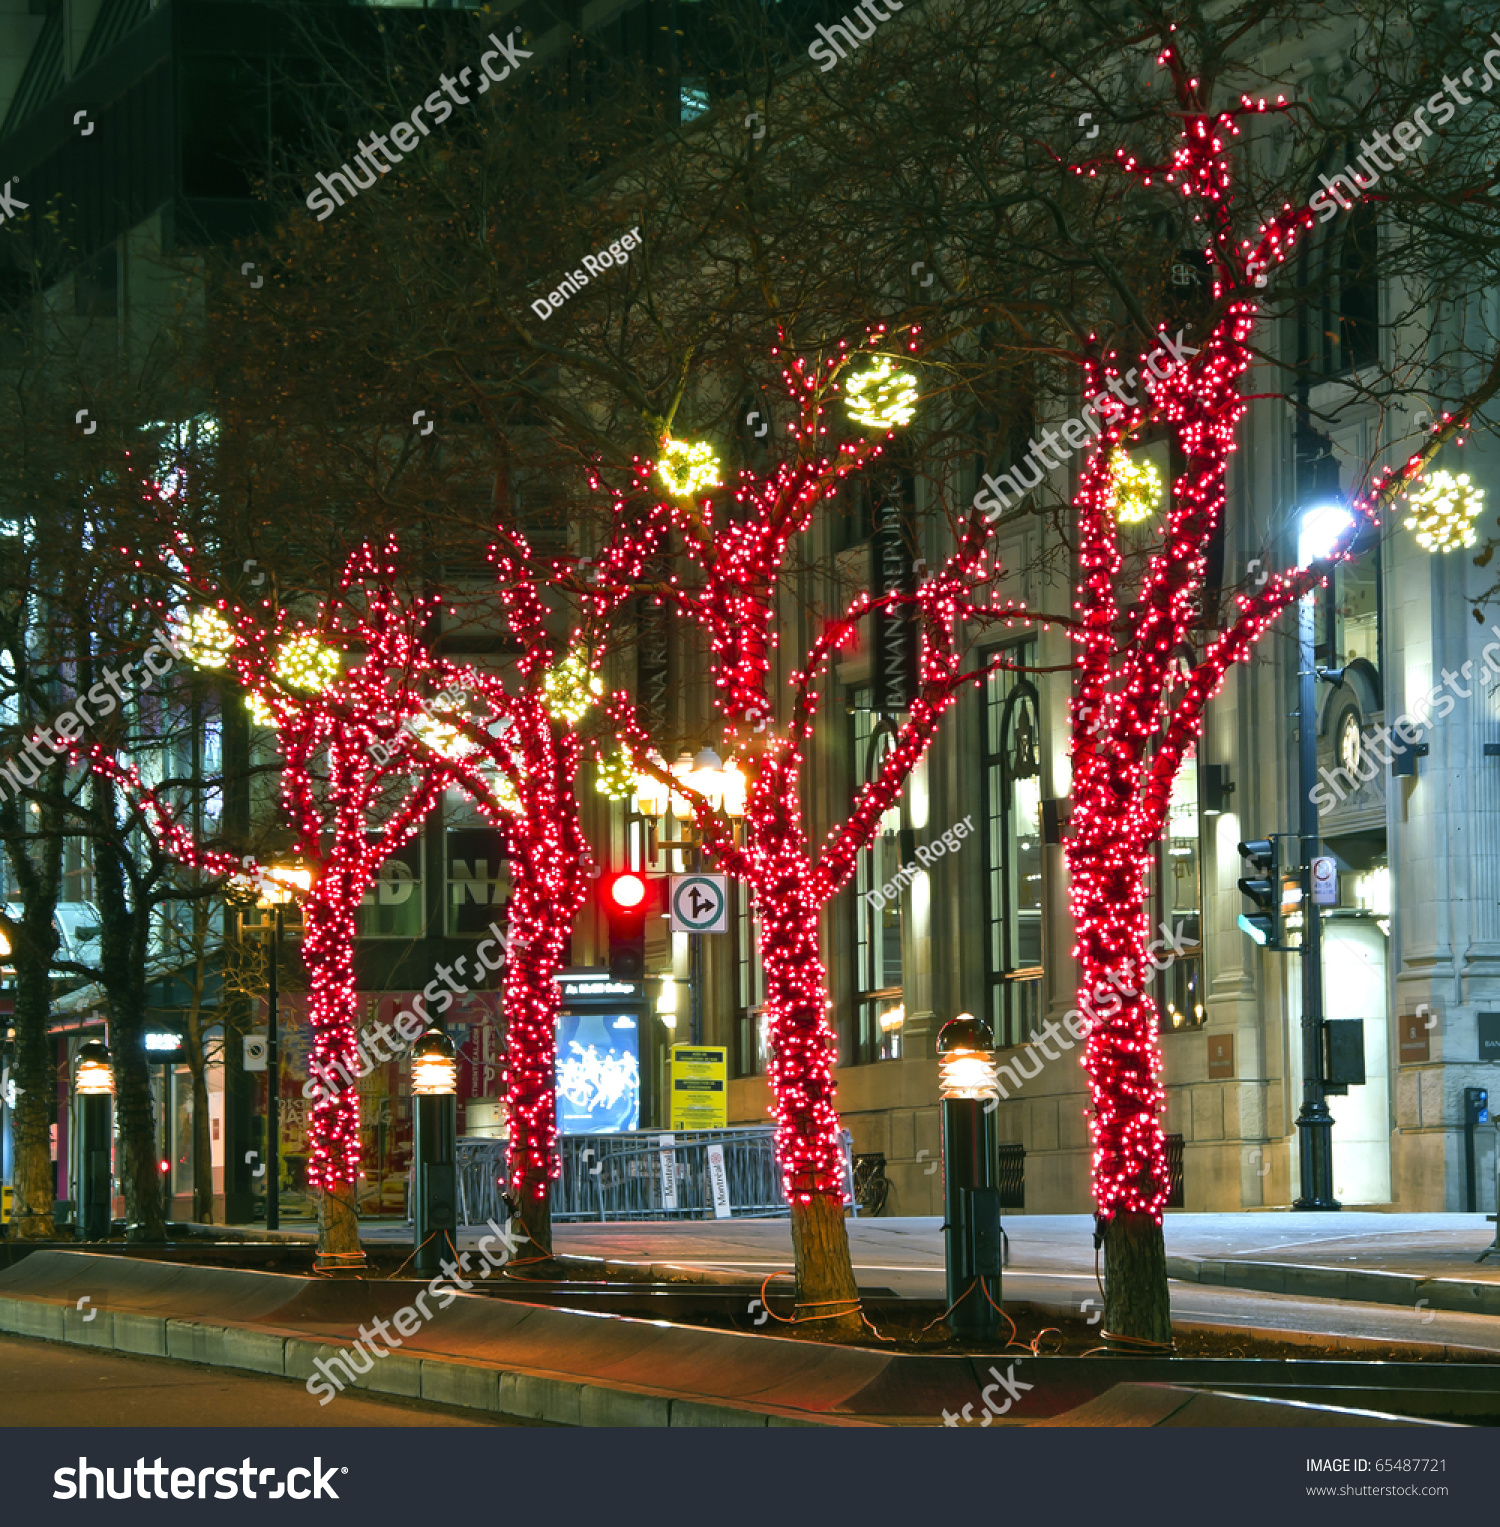 Decorative Christmas Lights Around Trees Middle Stock